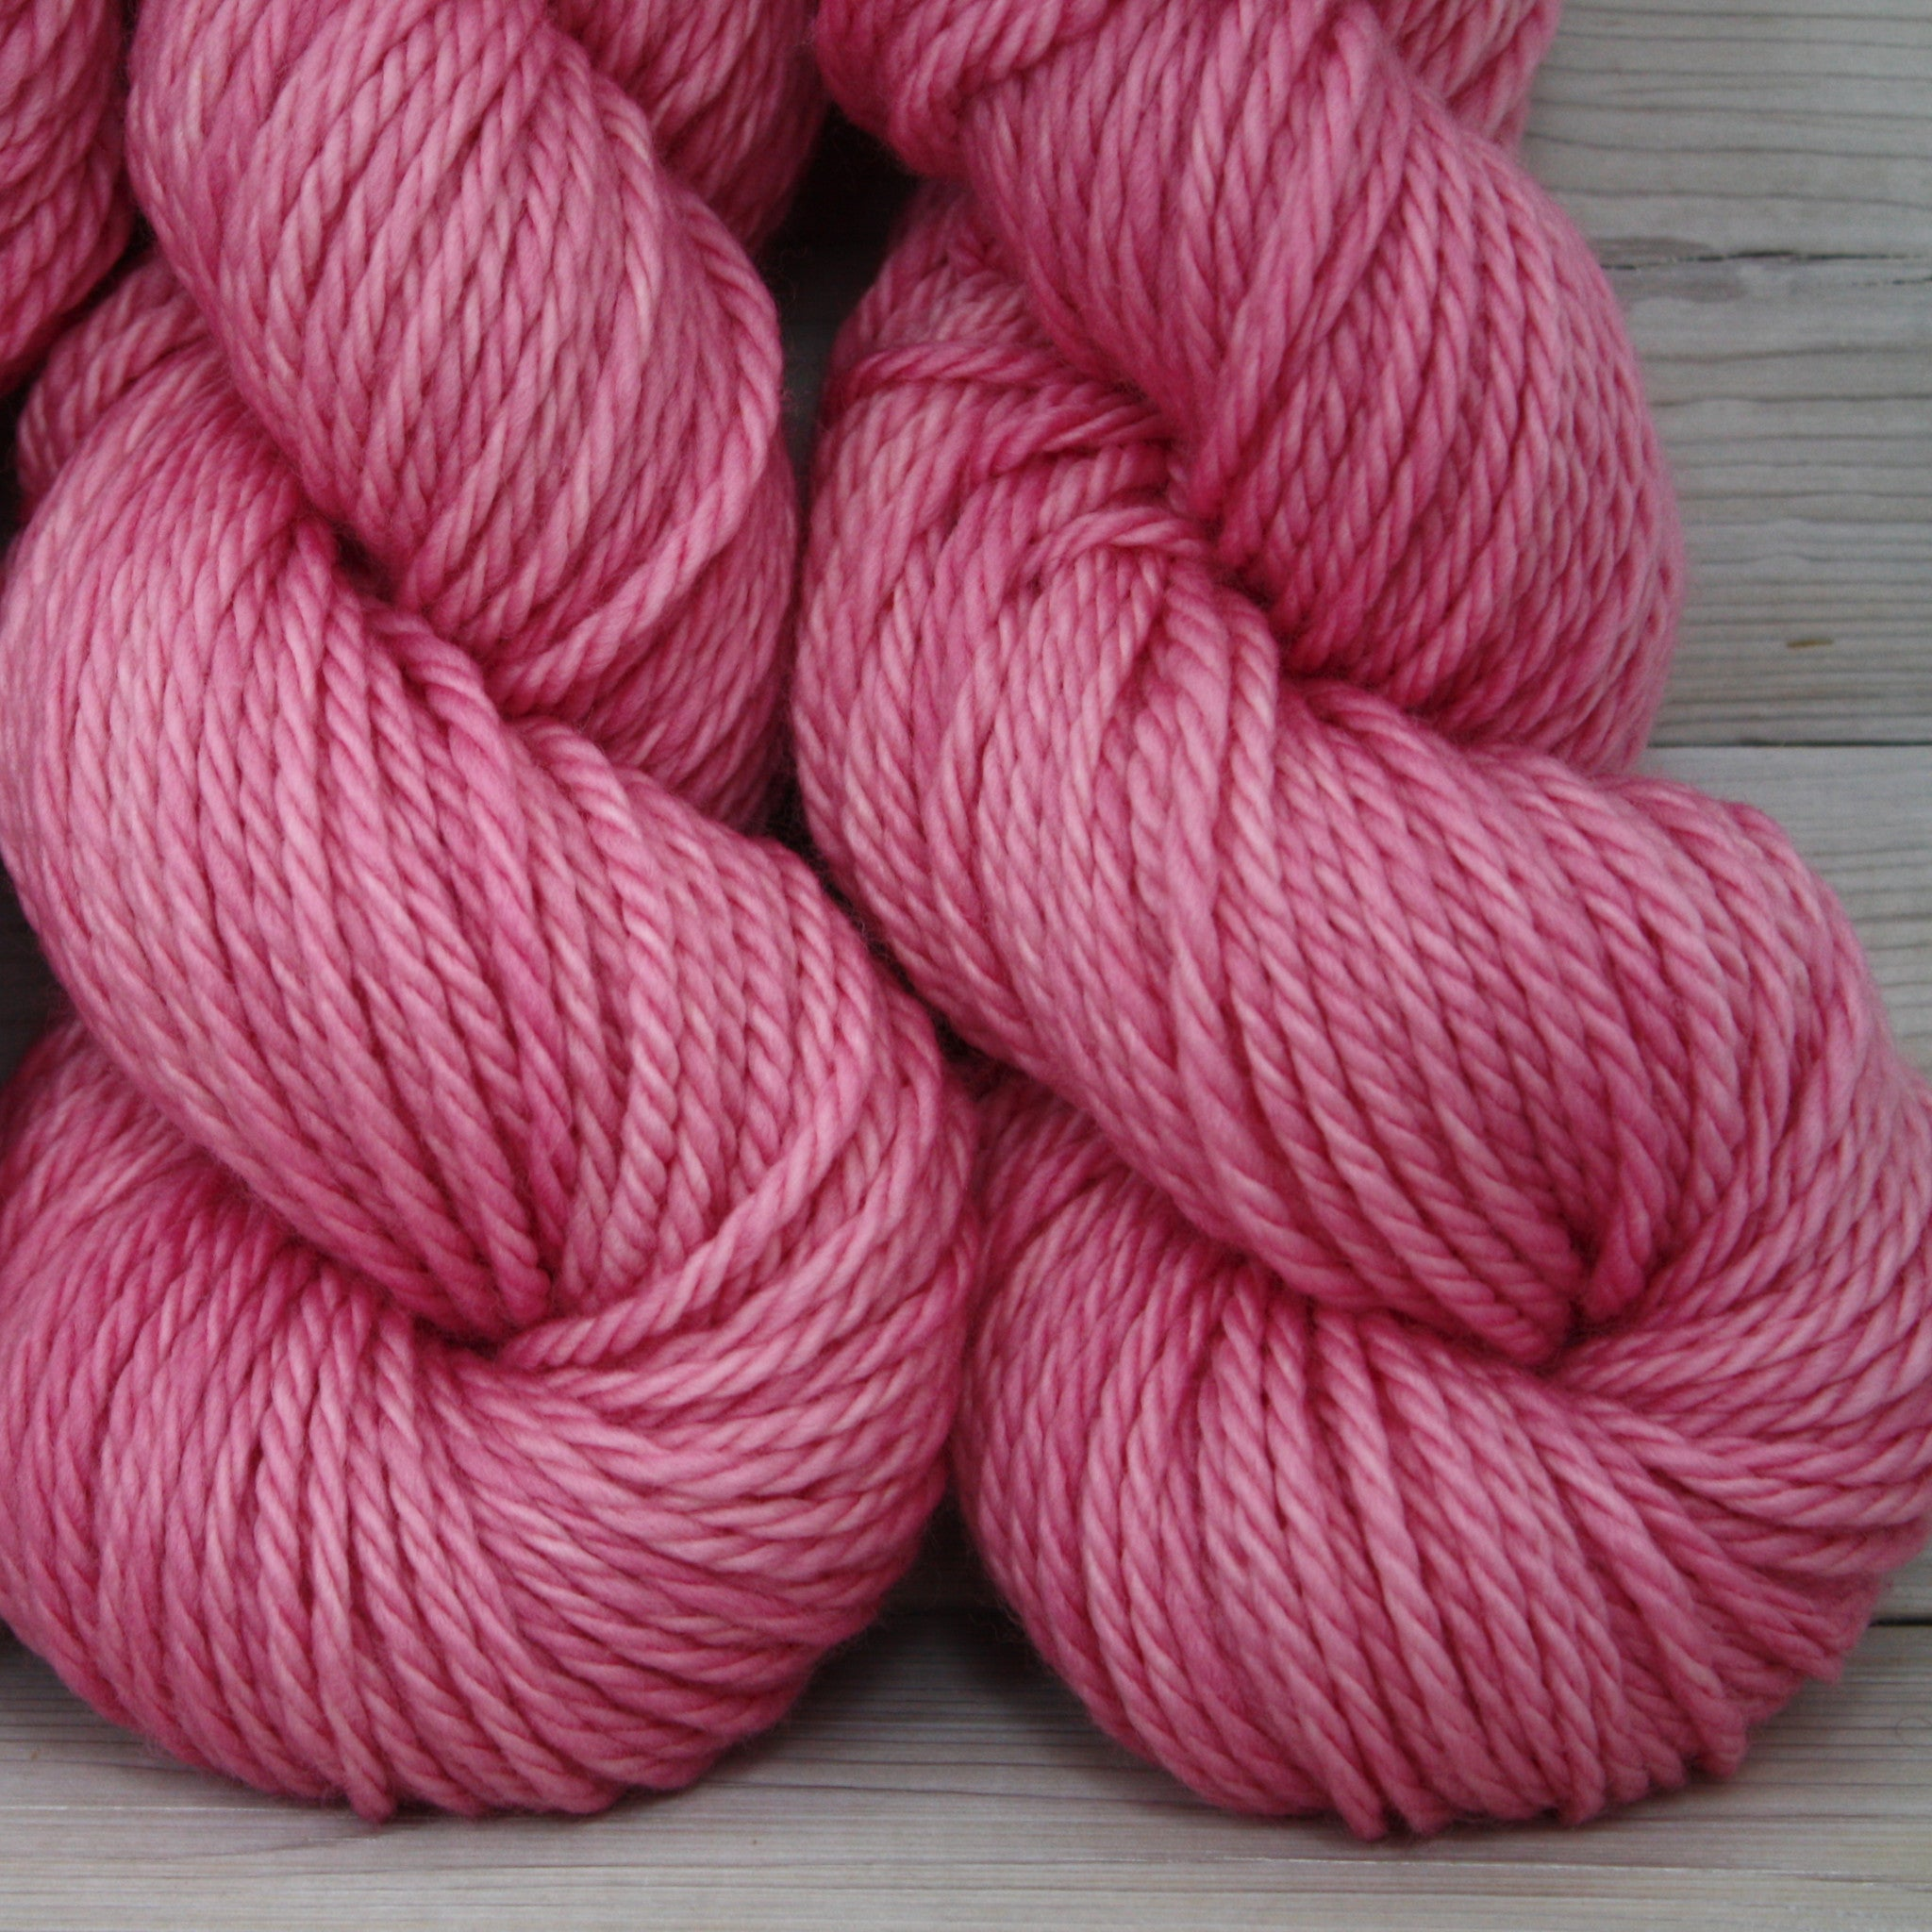 Apollo Yarn | Colorway: Primrose